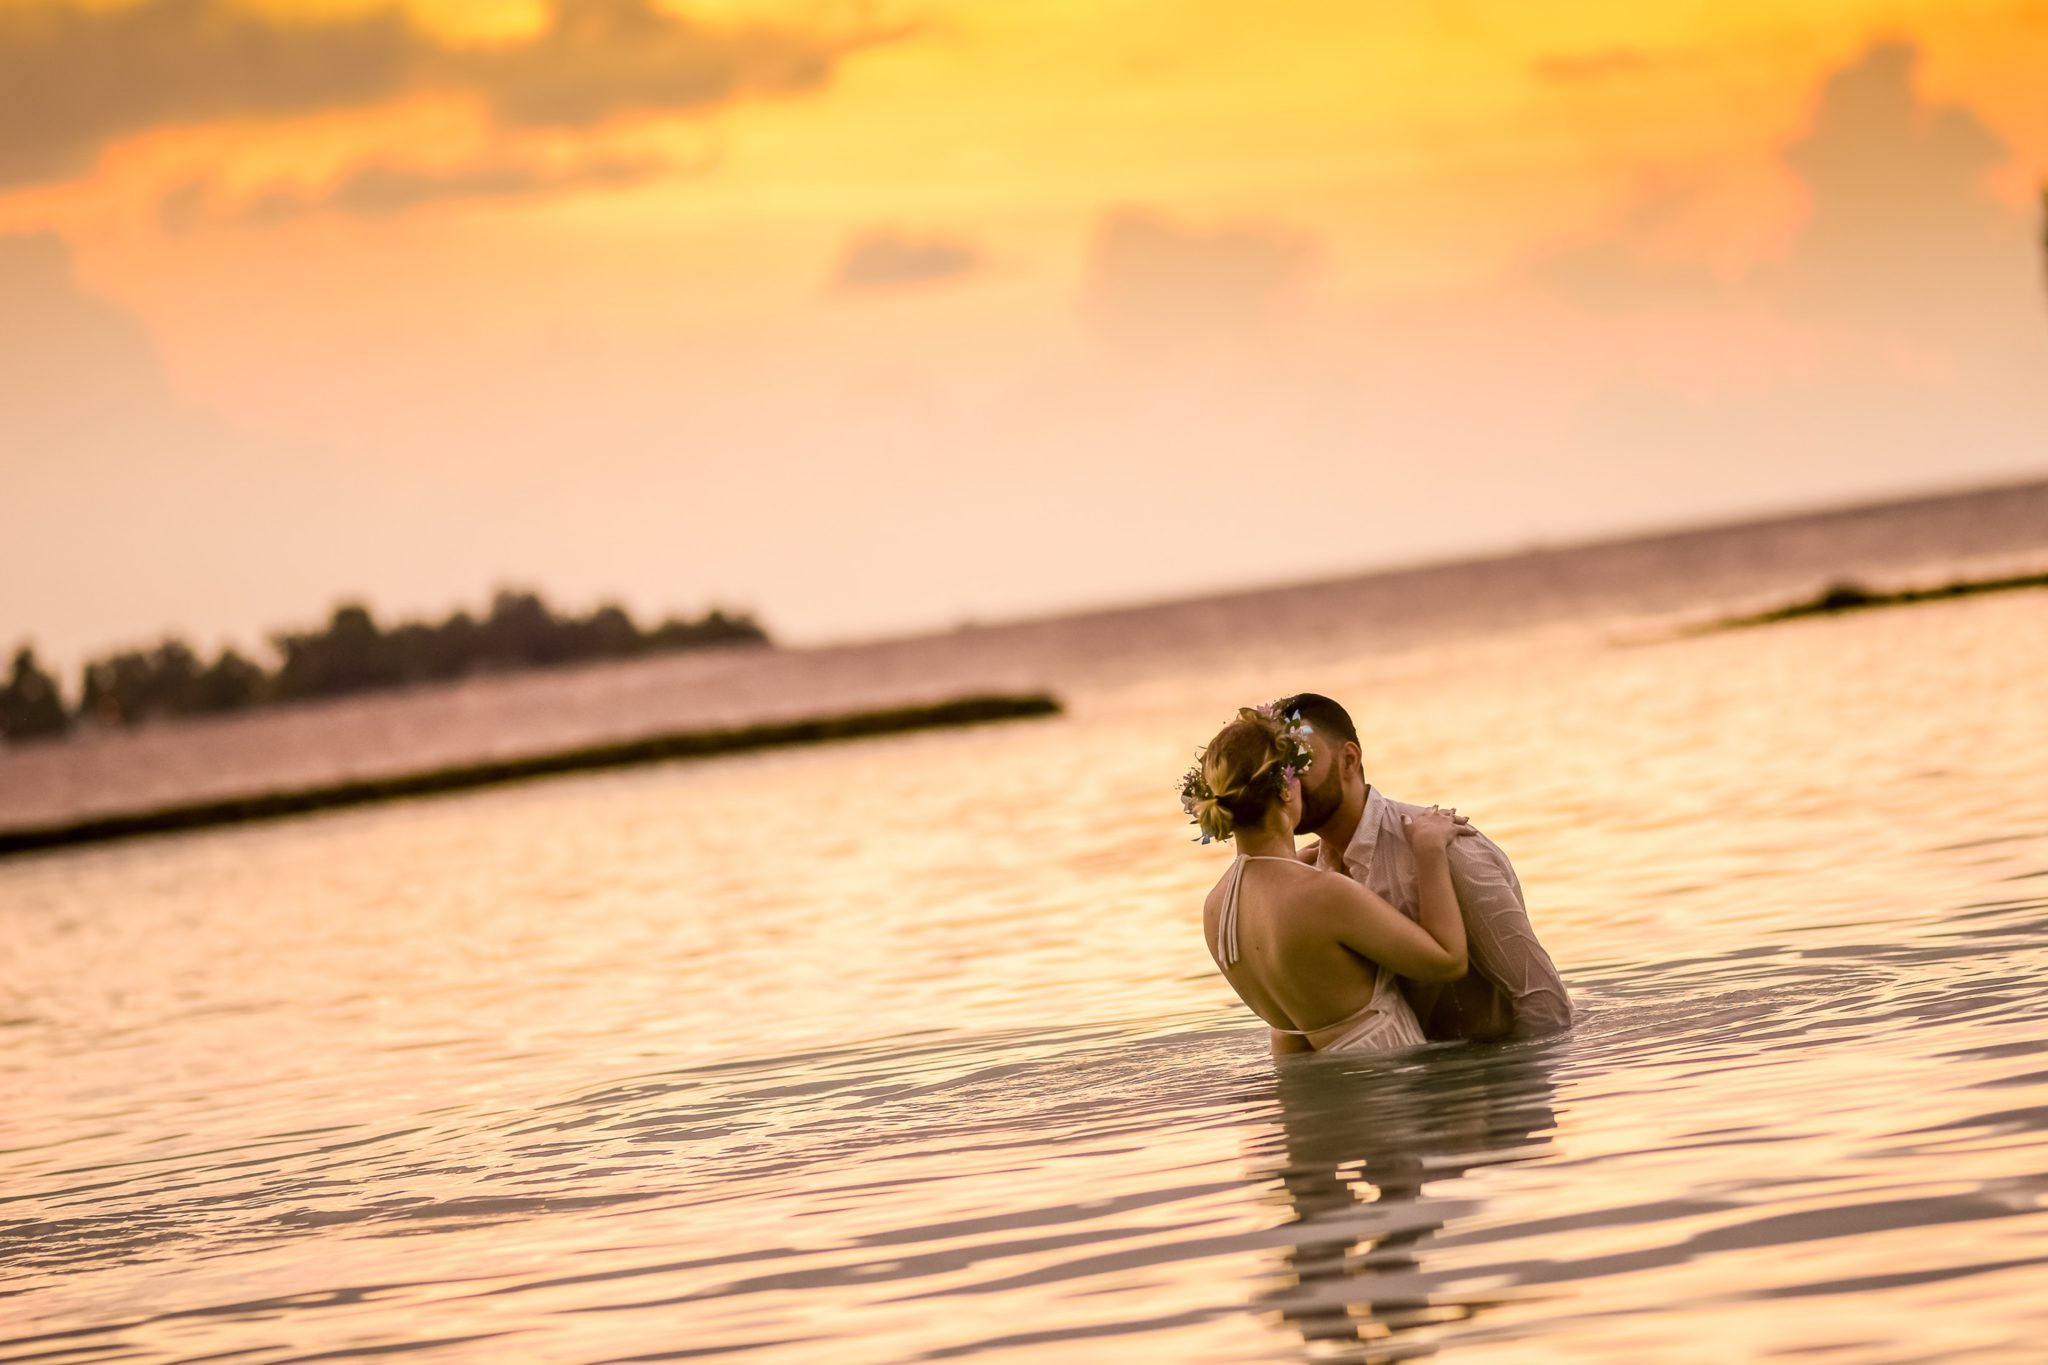 woman-and-man-kissing-in-body-of-water-1024991